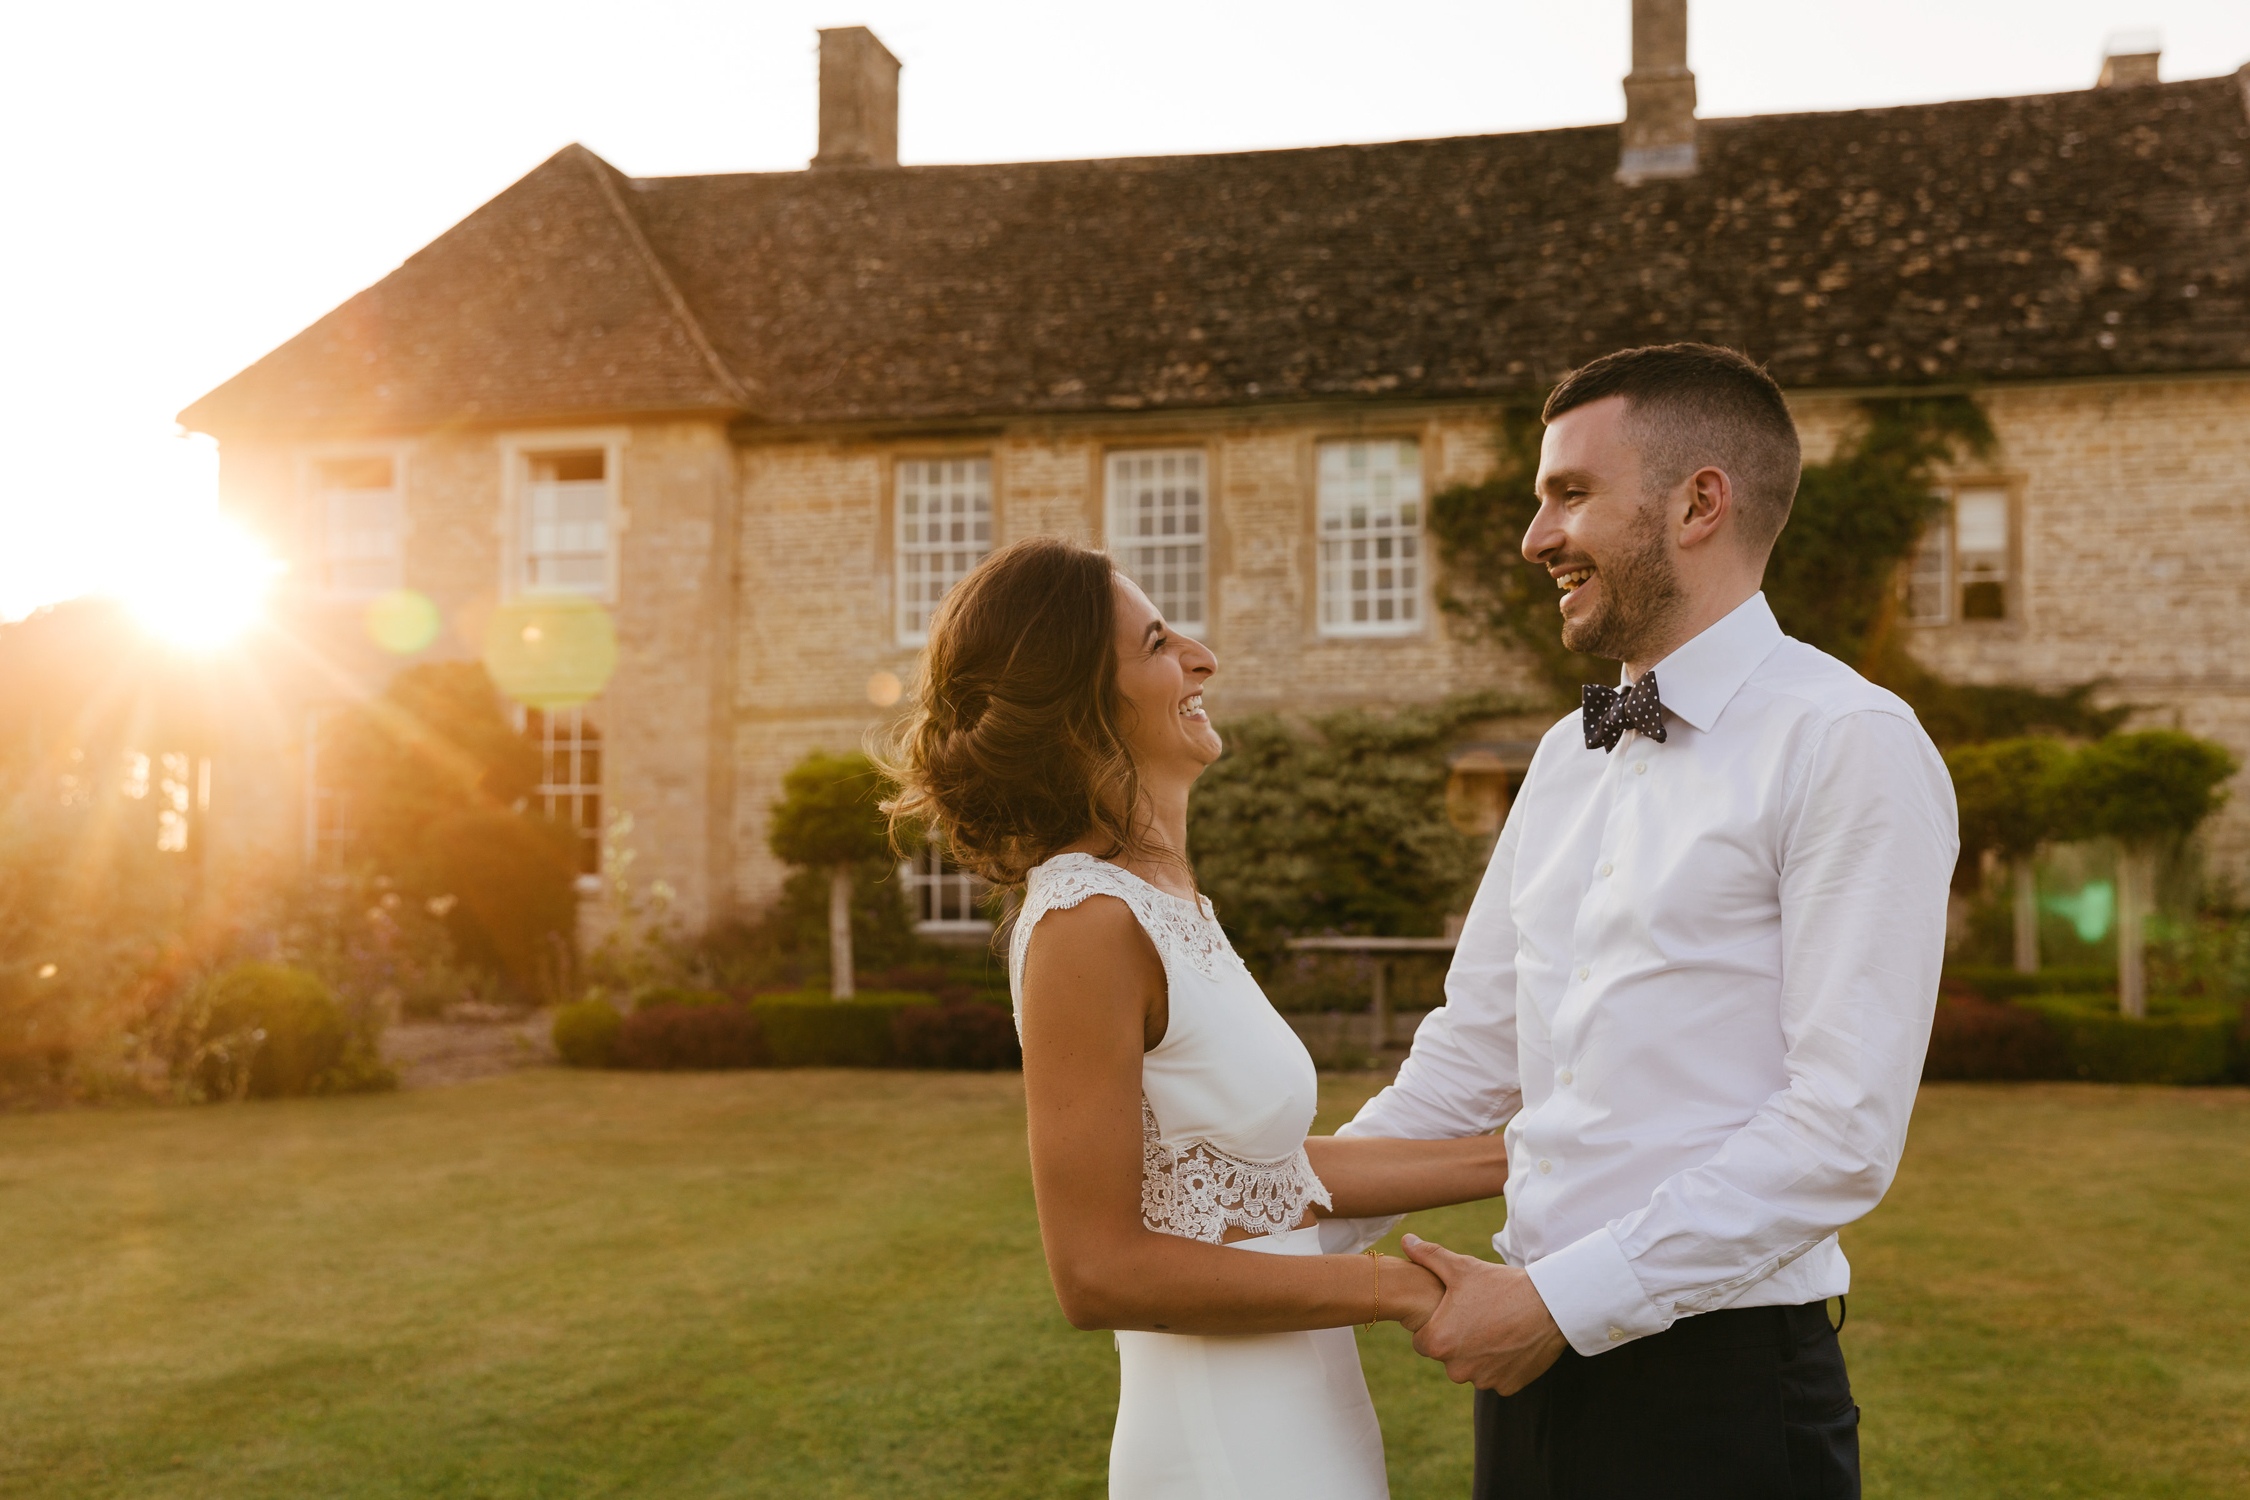 natural wedding photography at oxleaze barn